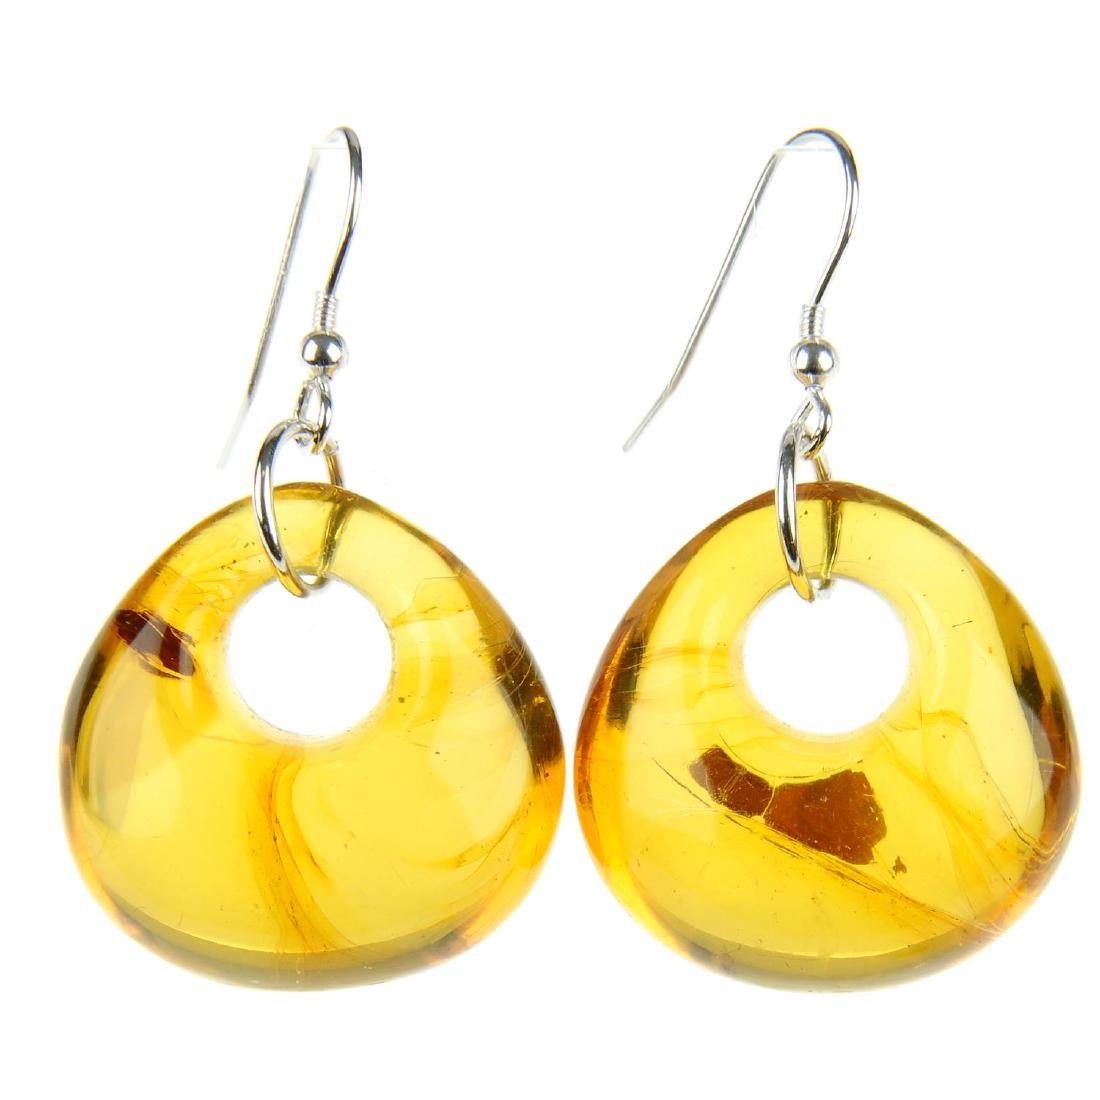 Two pairs of natural Dominican Republic amber earrings.